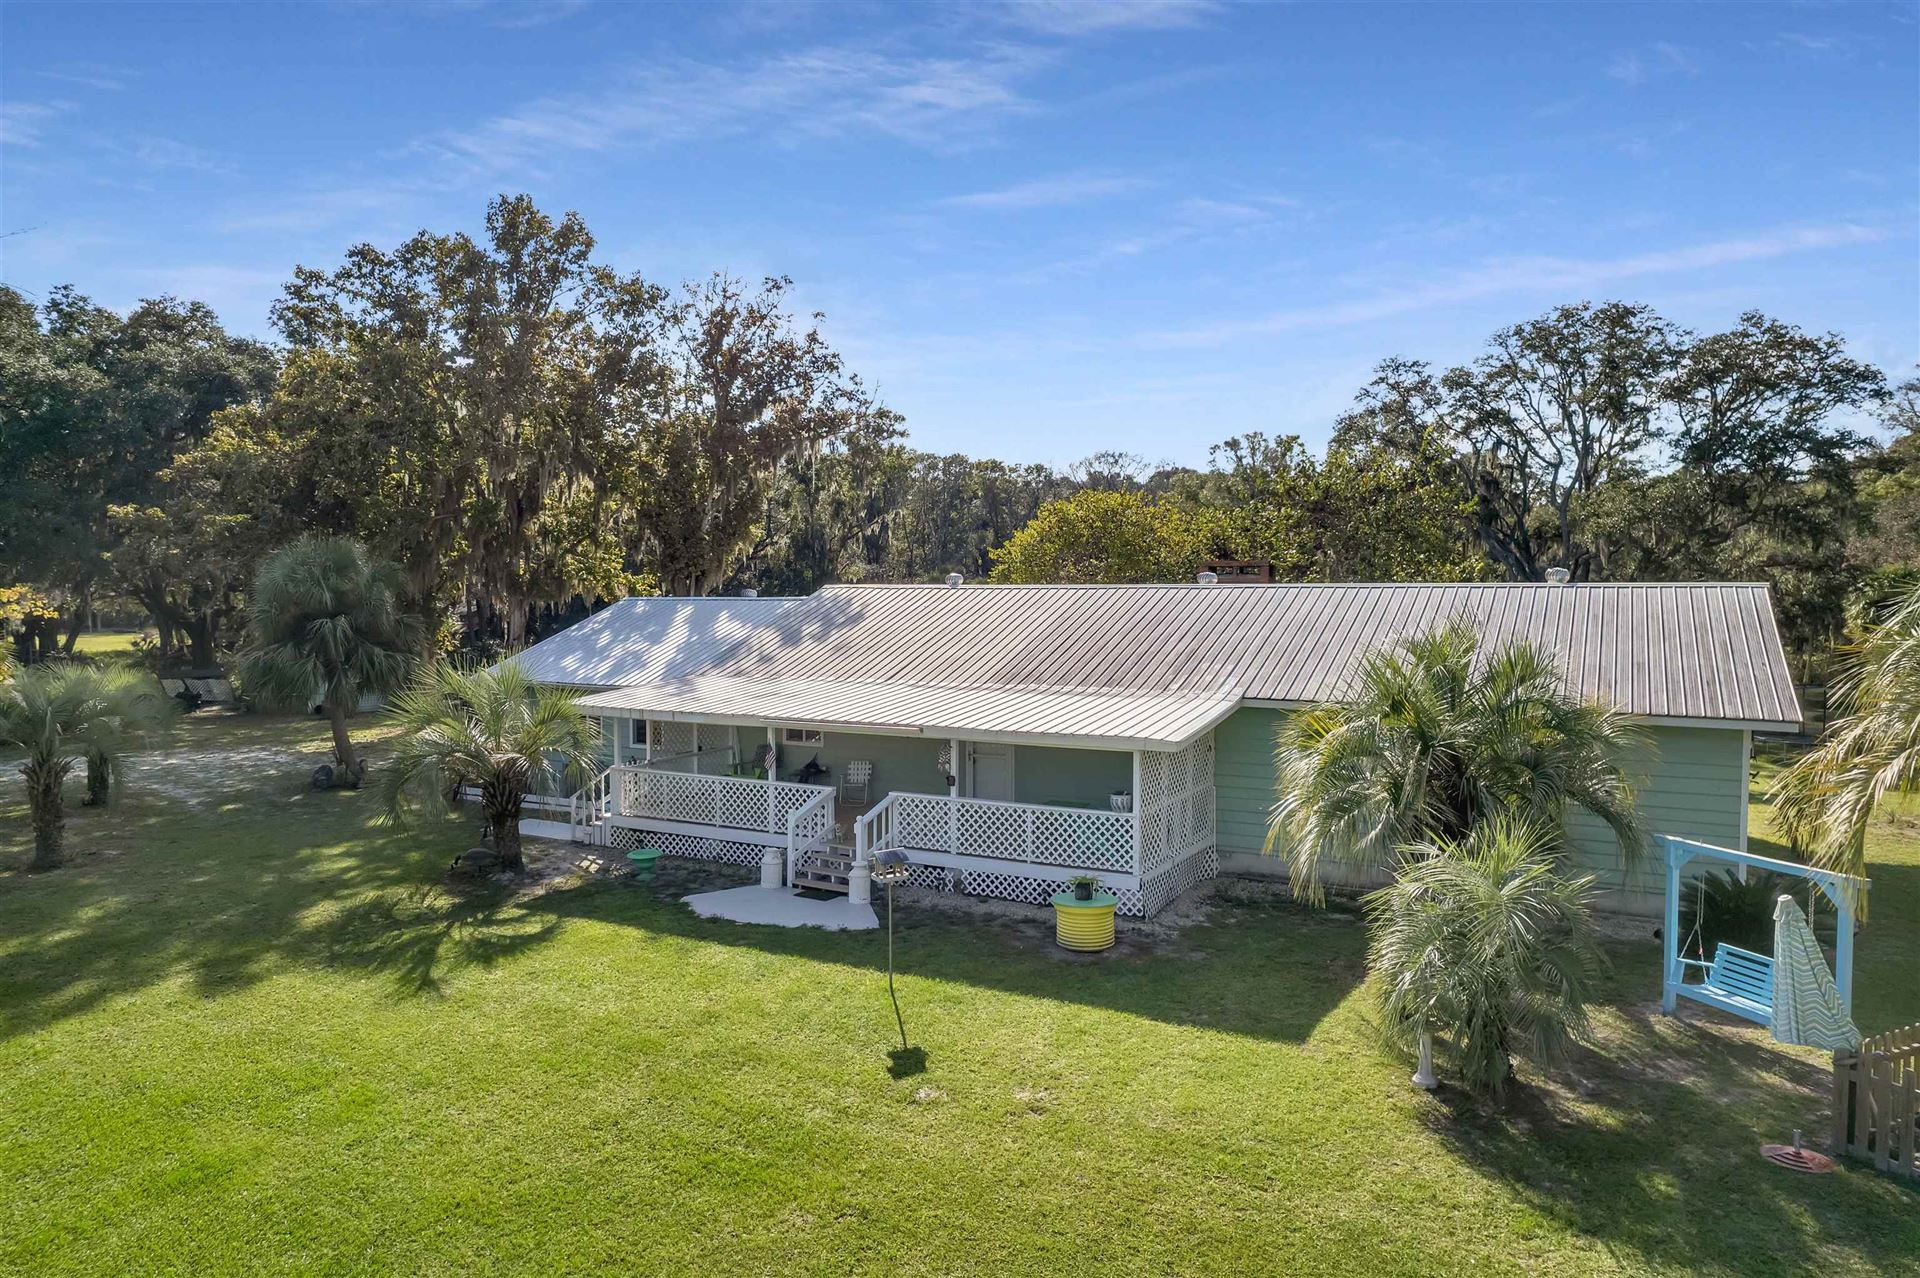 Photo of 1419 Andrew Reams Road, PERRY, FL 32347 (MLS # 338590)